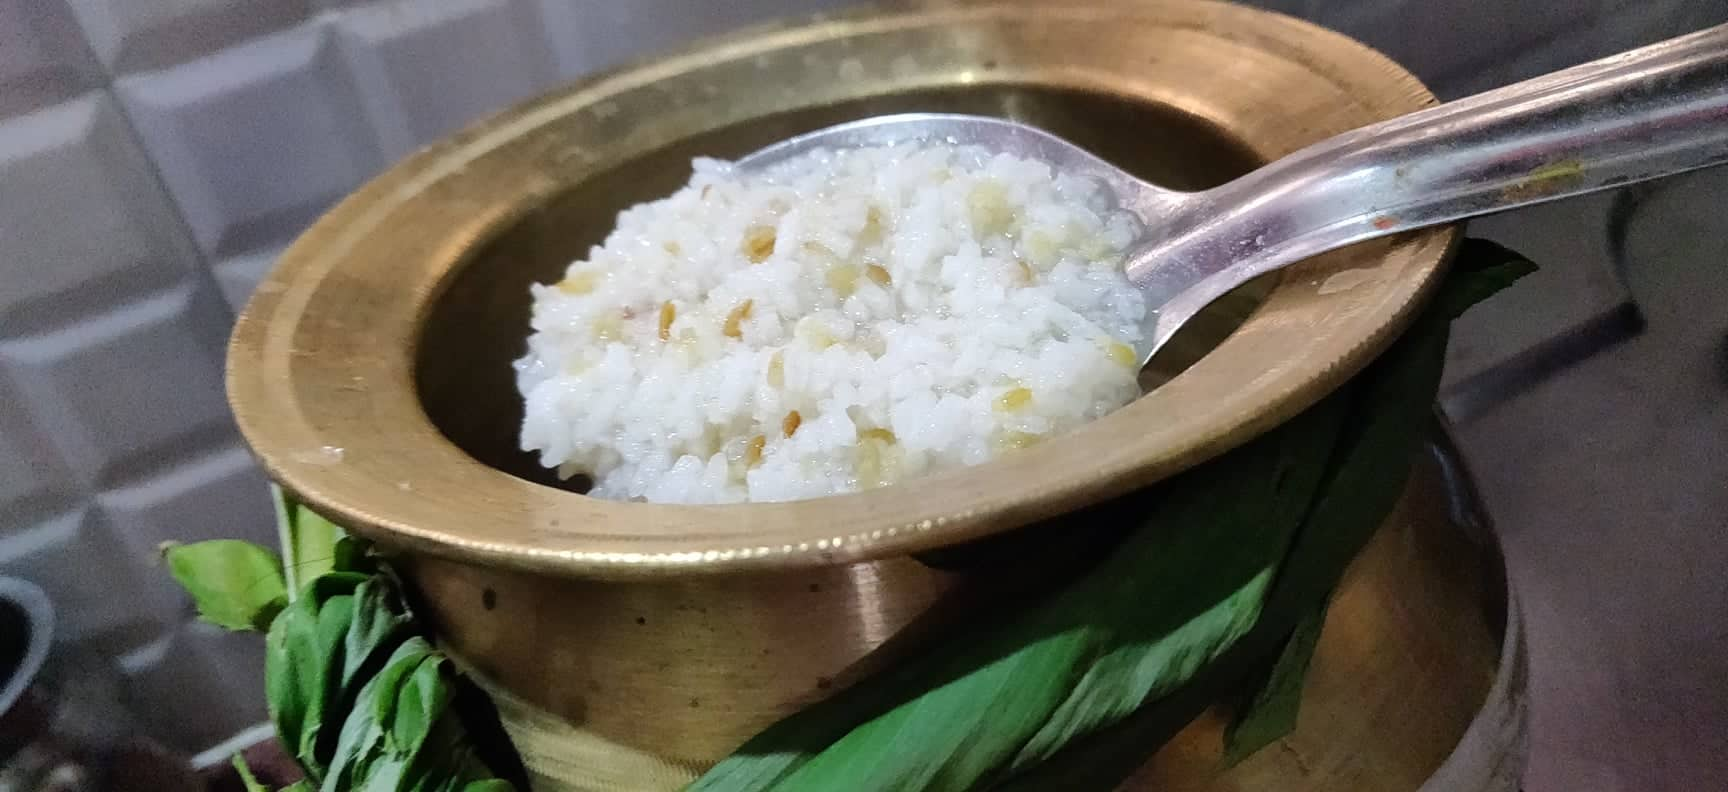 sakkarai_pongal_in_brass_pot - 136969341_167475105129375_6293434872257037106_n